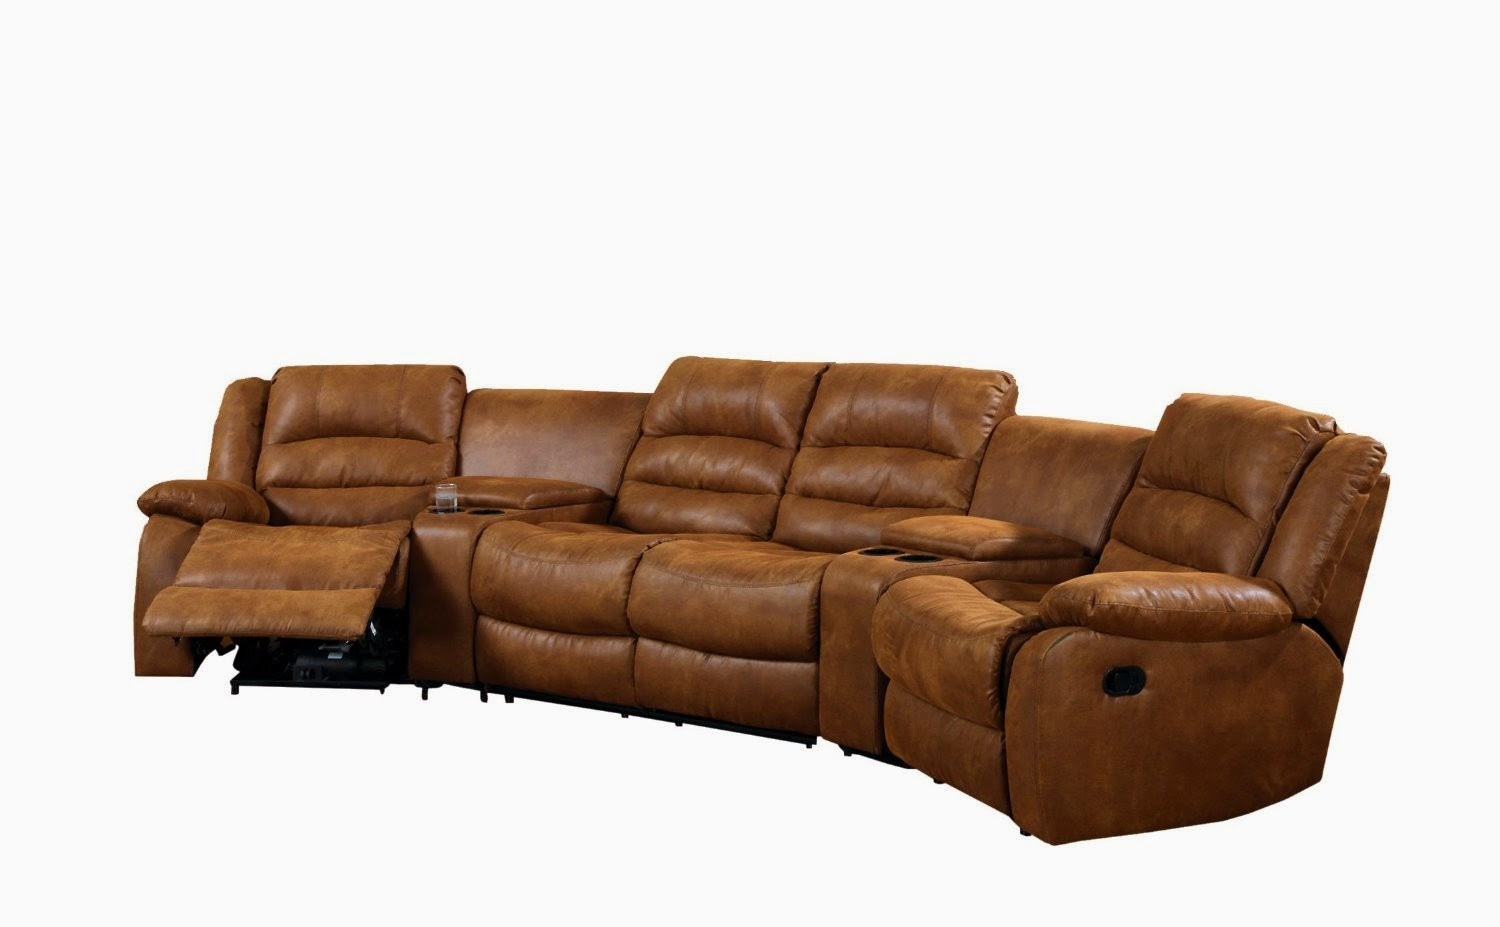 Beau Reclining Sofa Sets With Cup Holders